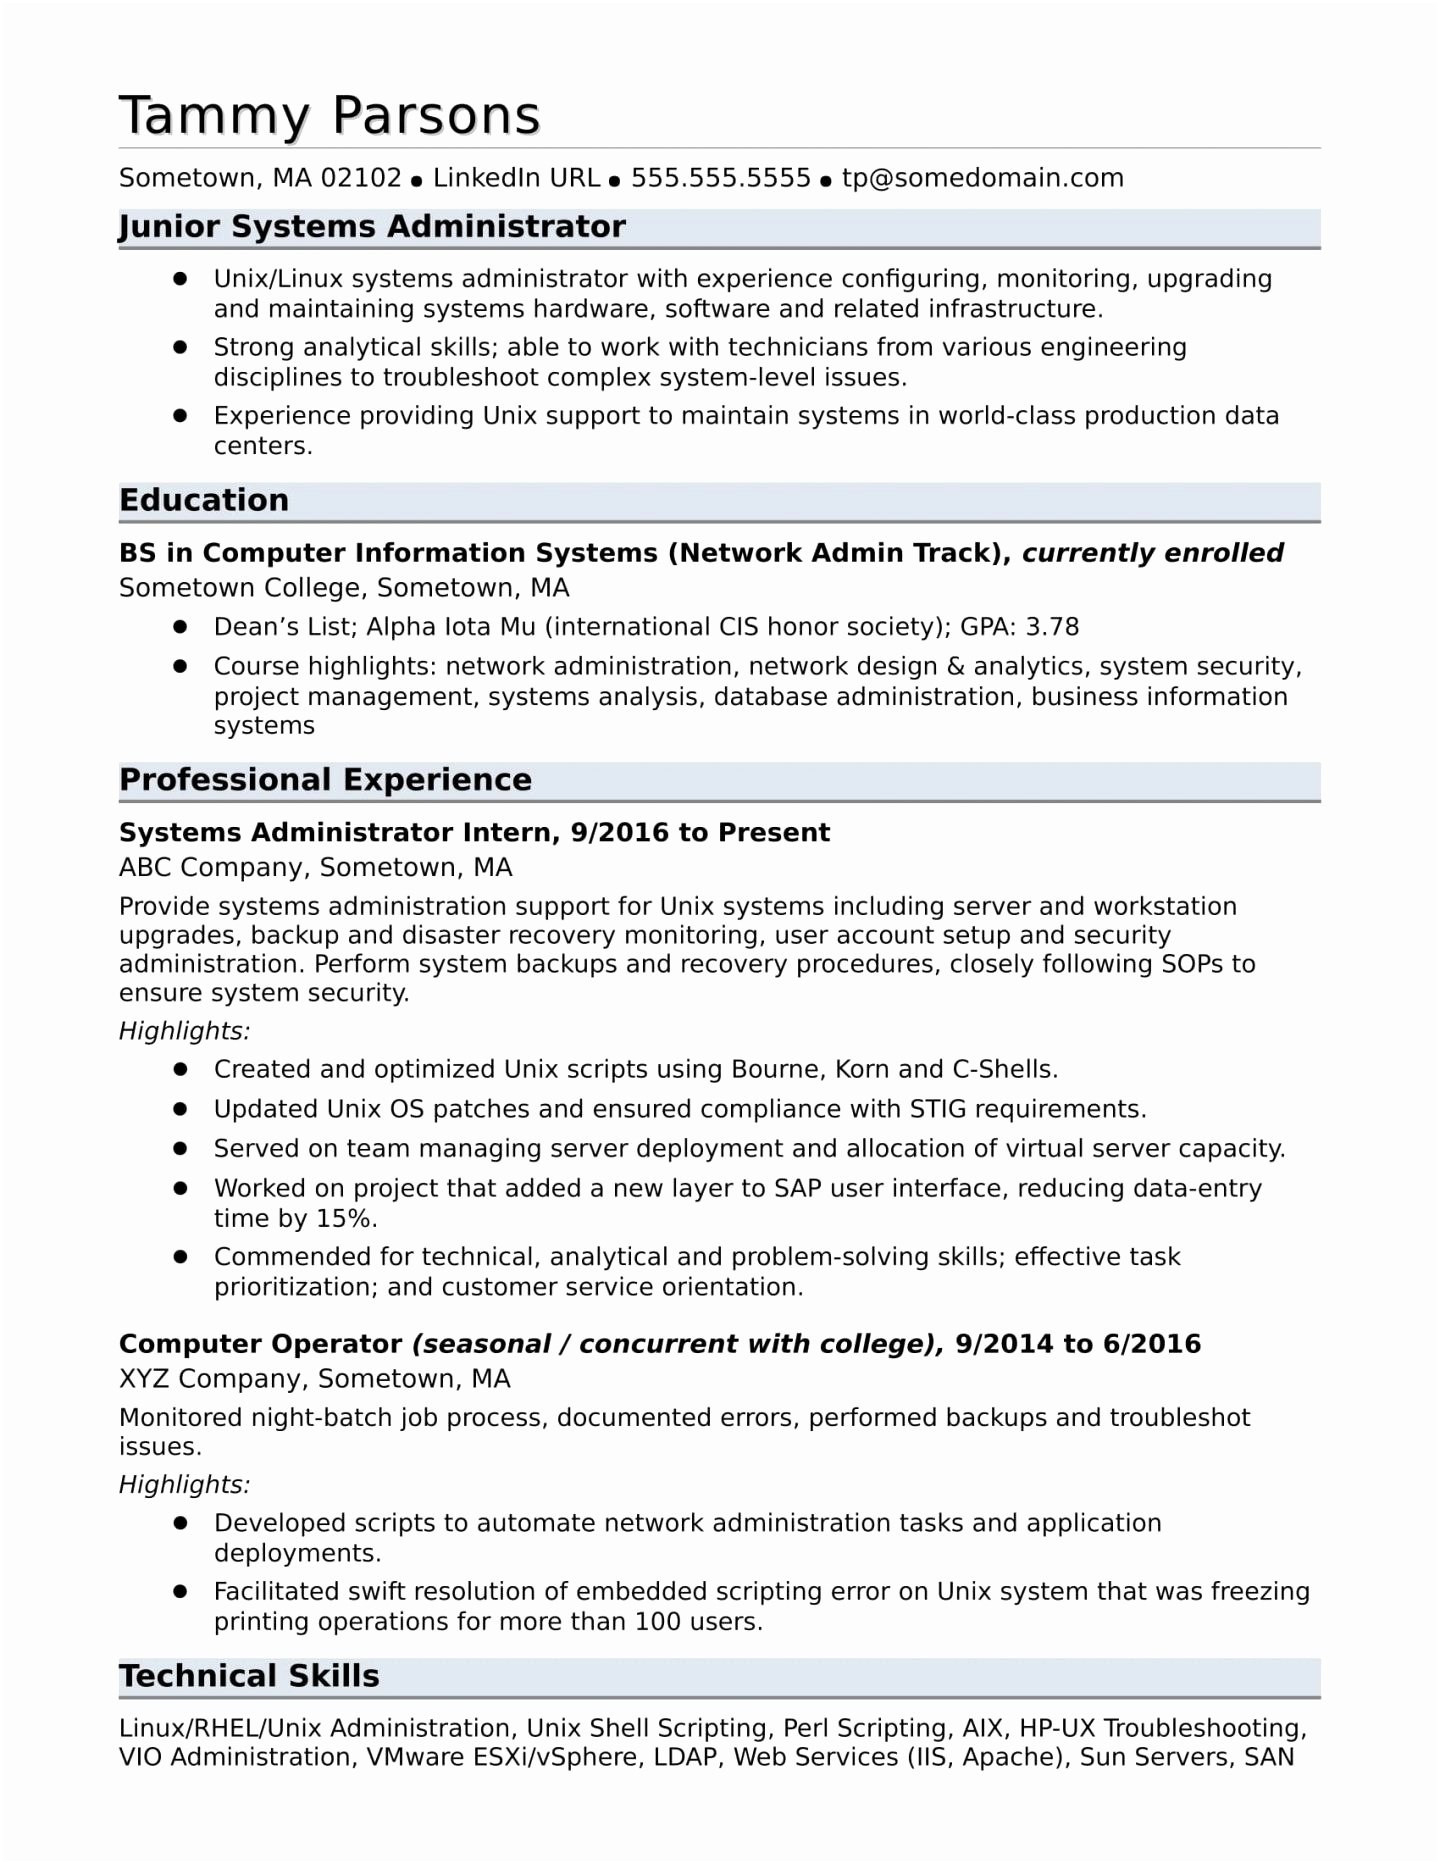 Jr Web Developer Resume - Junior Web Developer Resume Utd Resume Template Unique Fishing